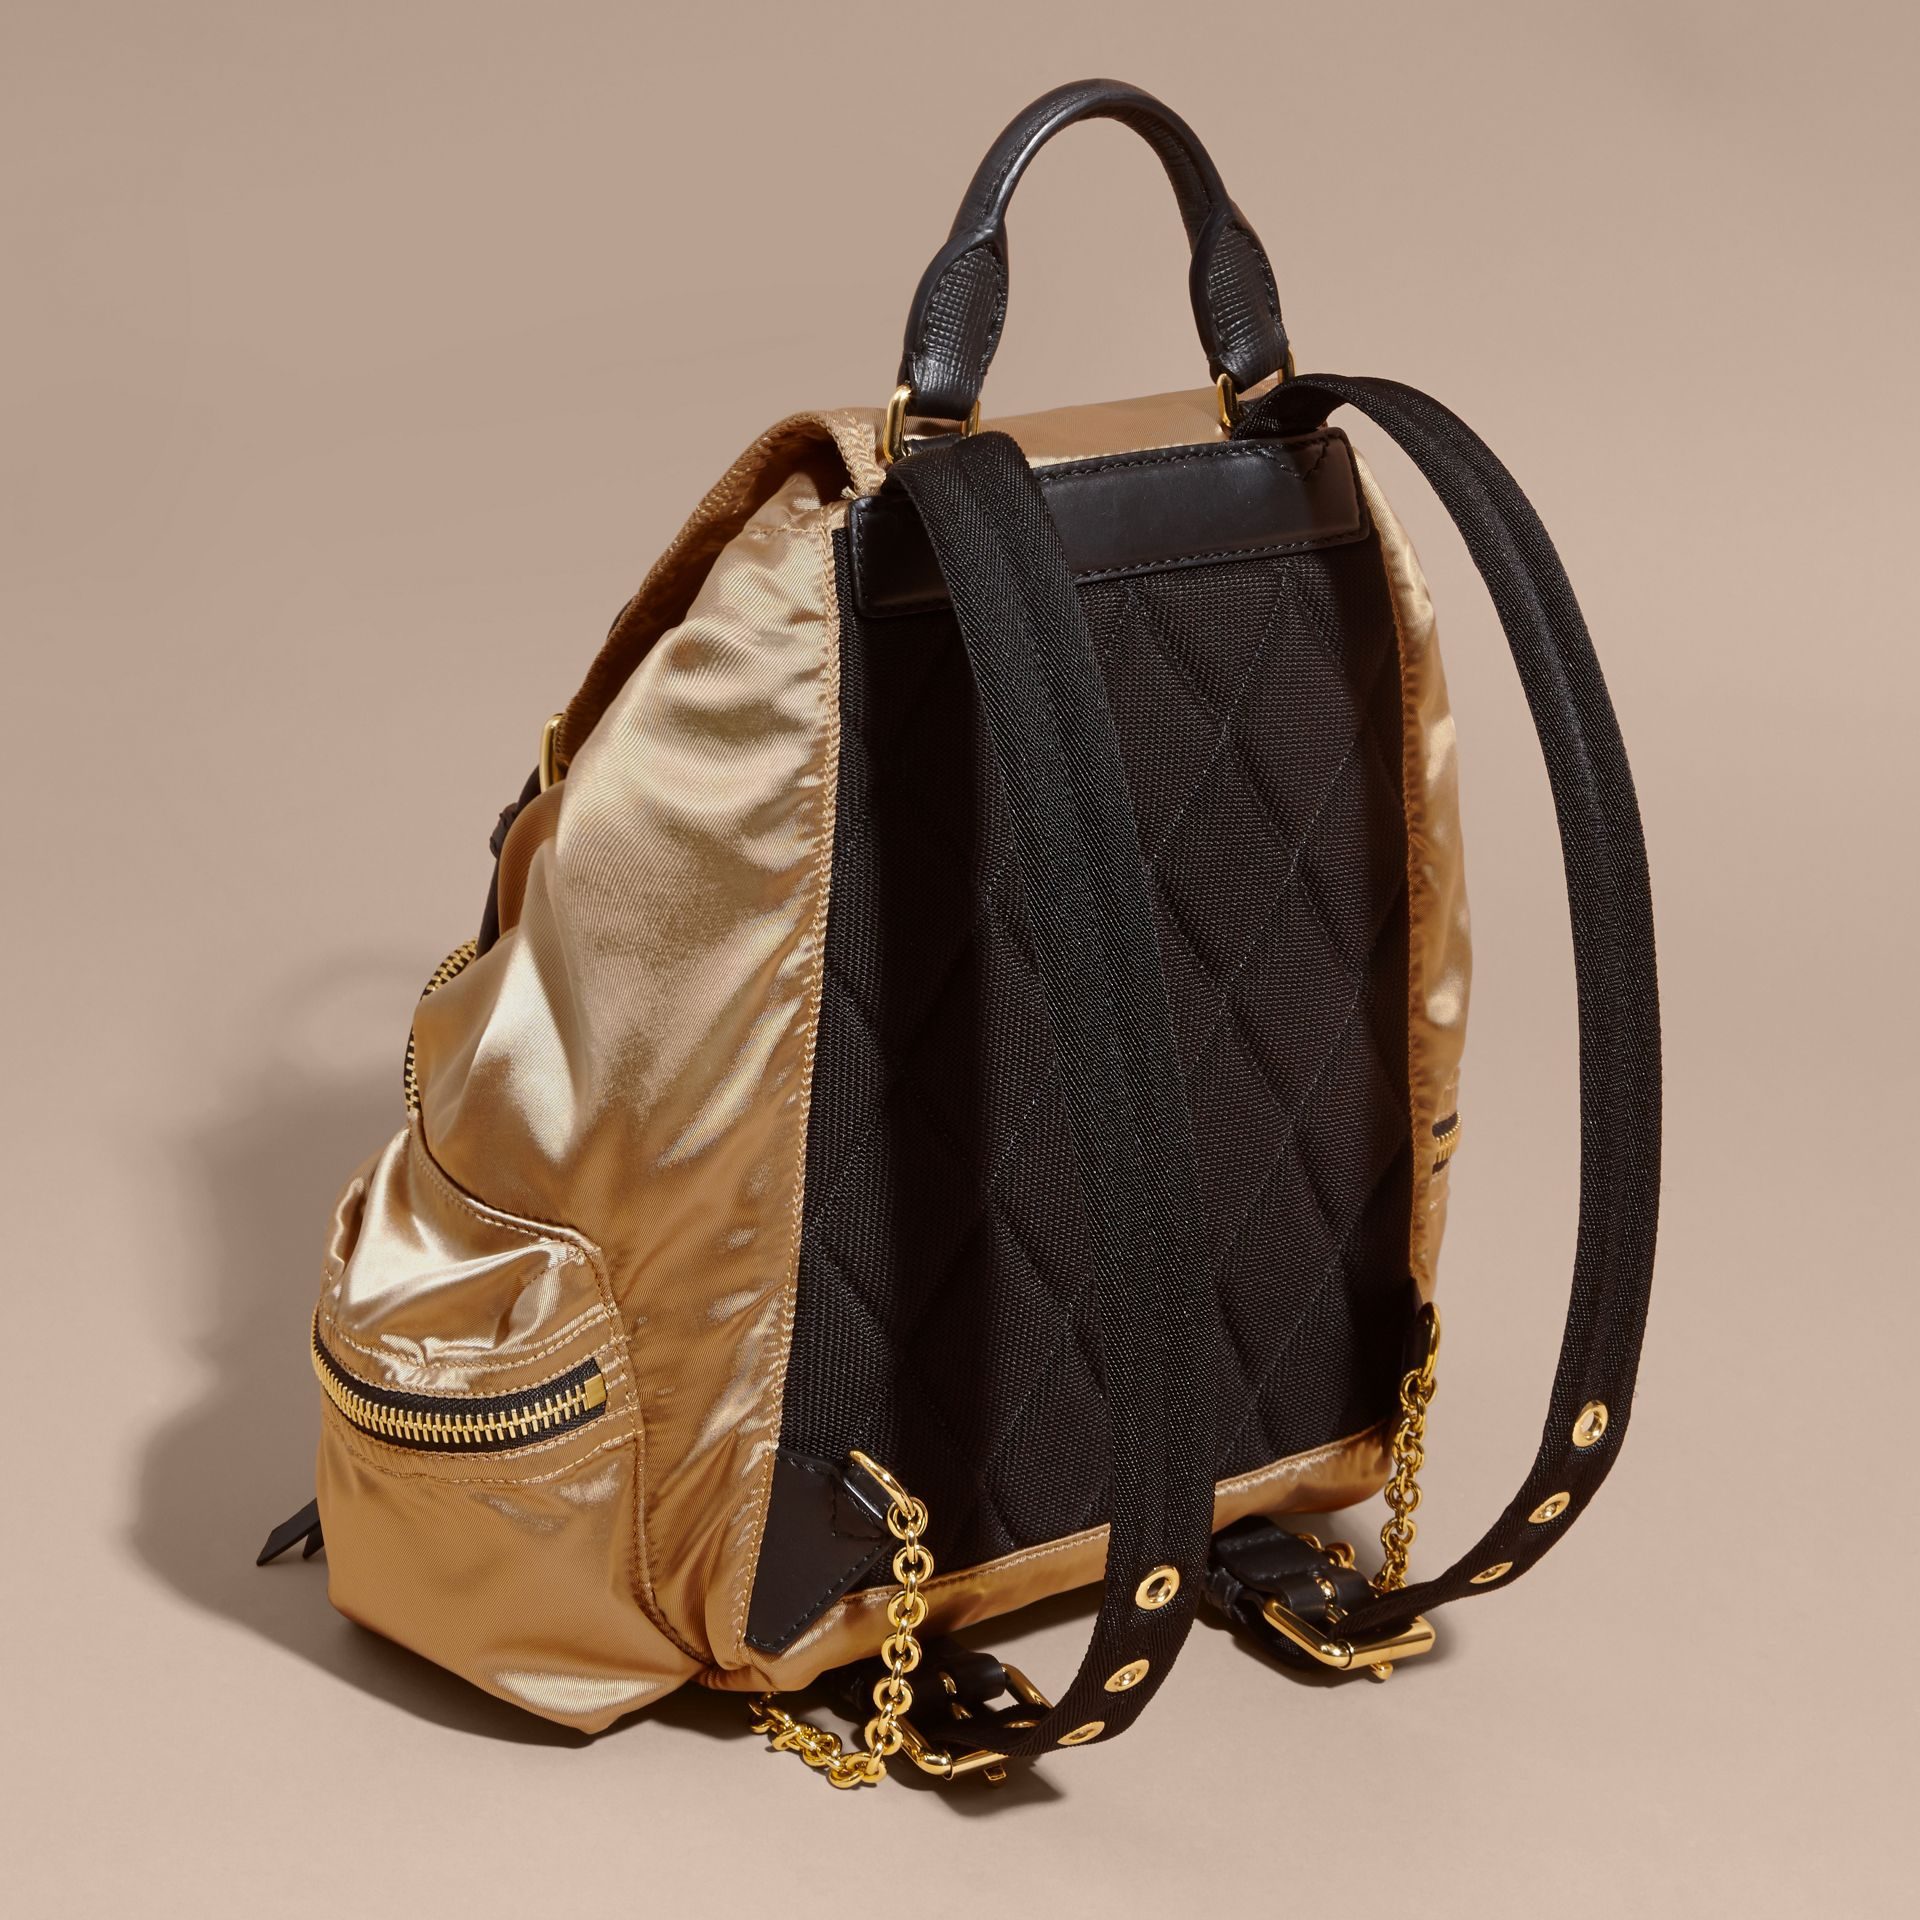 Gold/black The Medium Rucksack in Two-tone Nylon and Leather Gold/black - gallery image 4